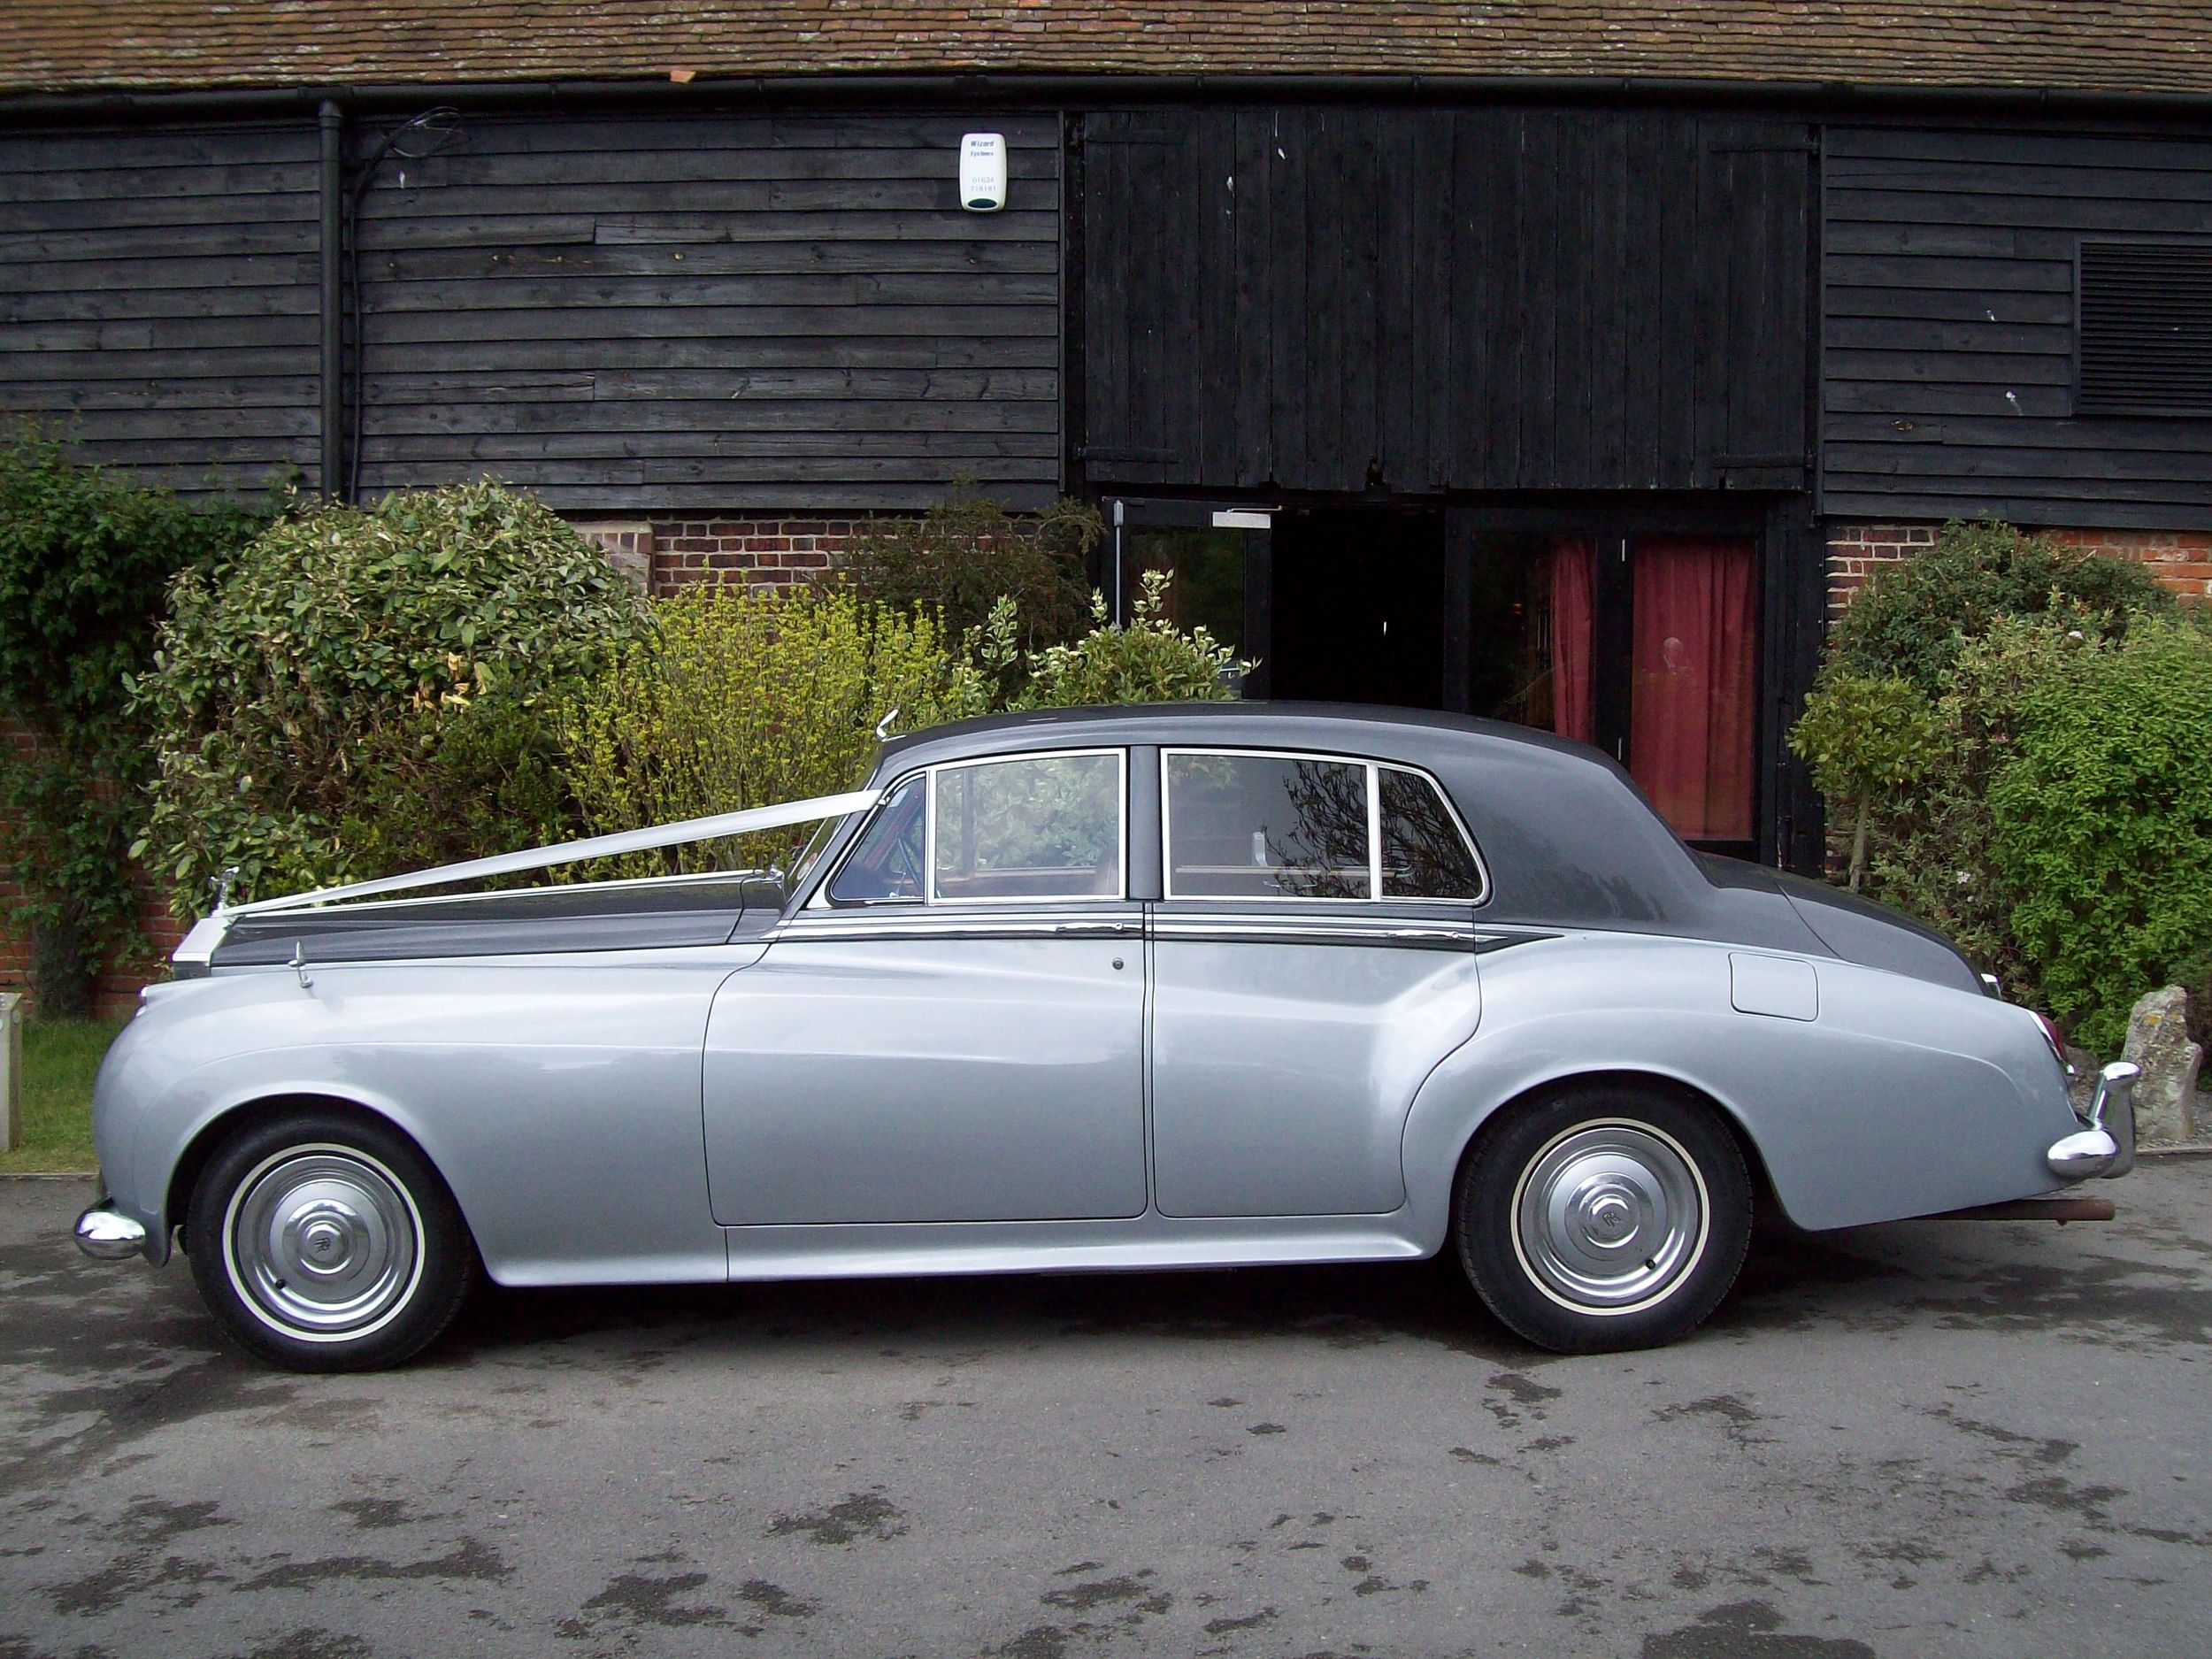 The Rolls Royce Silver Cloud Mk1 in the distiguished silver and slate colour scheme.